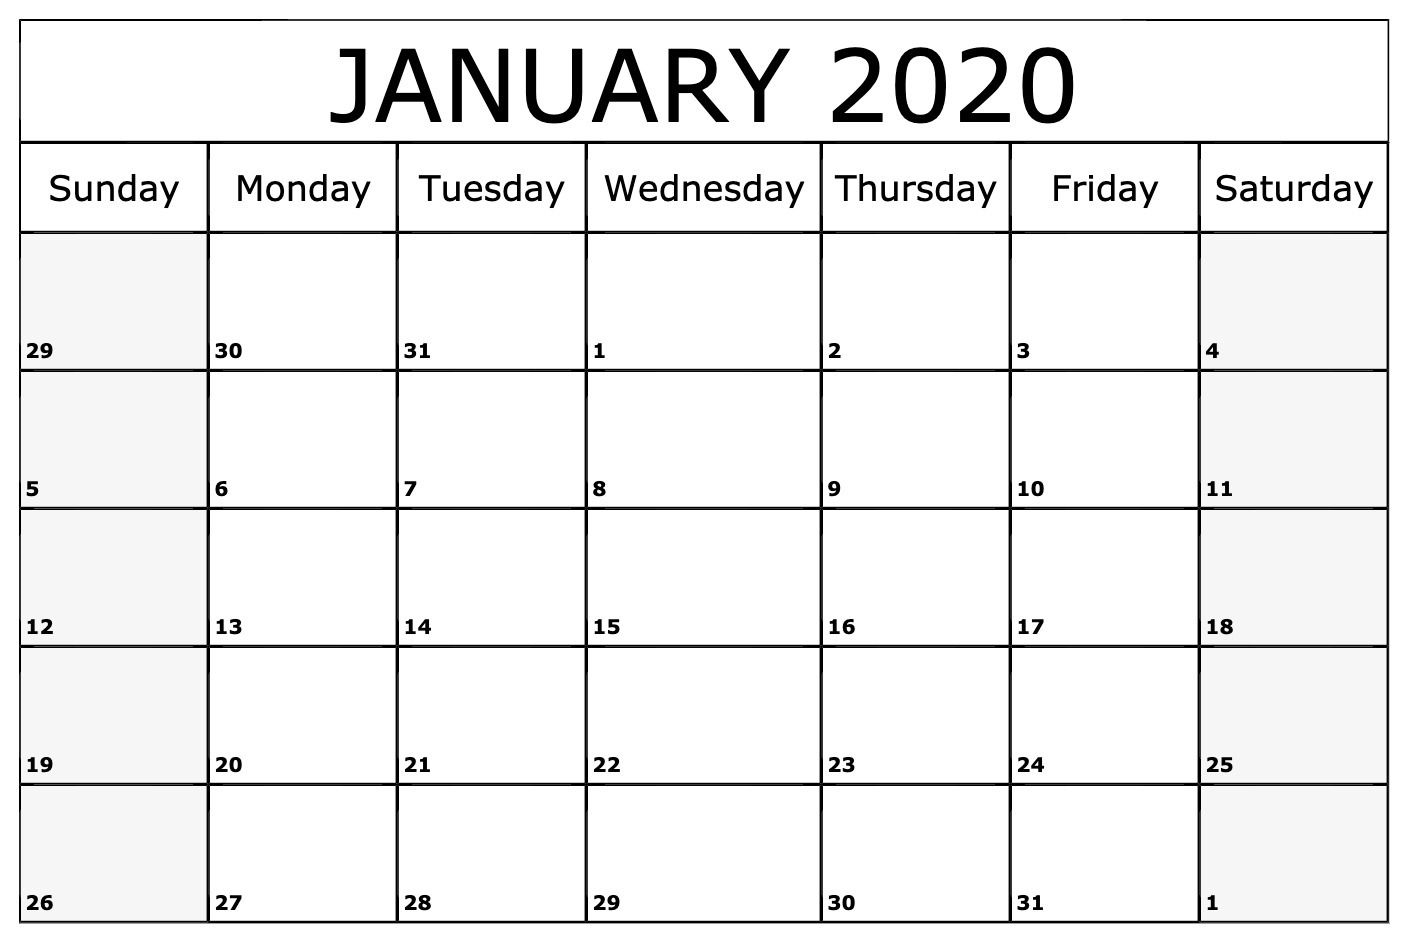 Free Printable January 2020 Calendar Template | Printable regarding Printable January 2020 Calendar